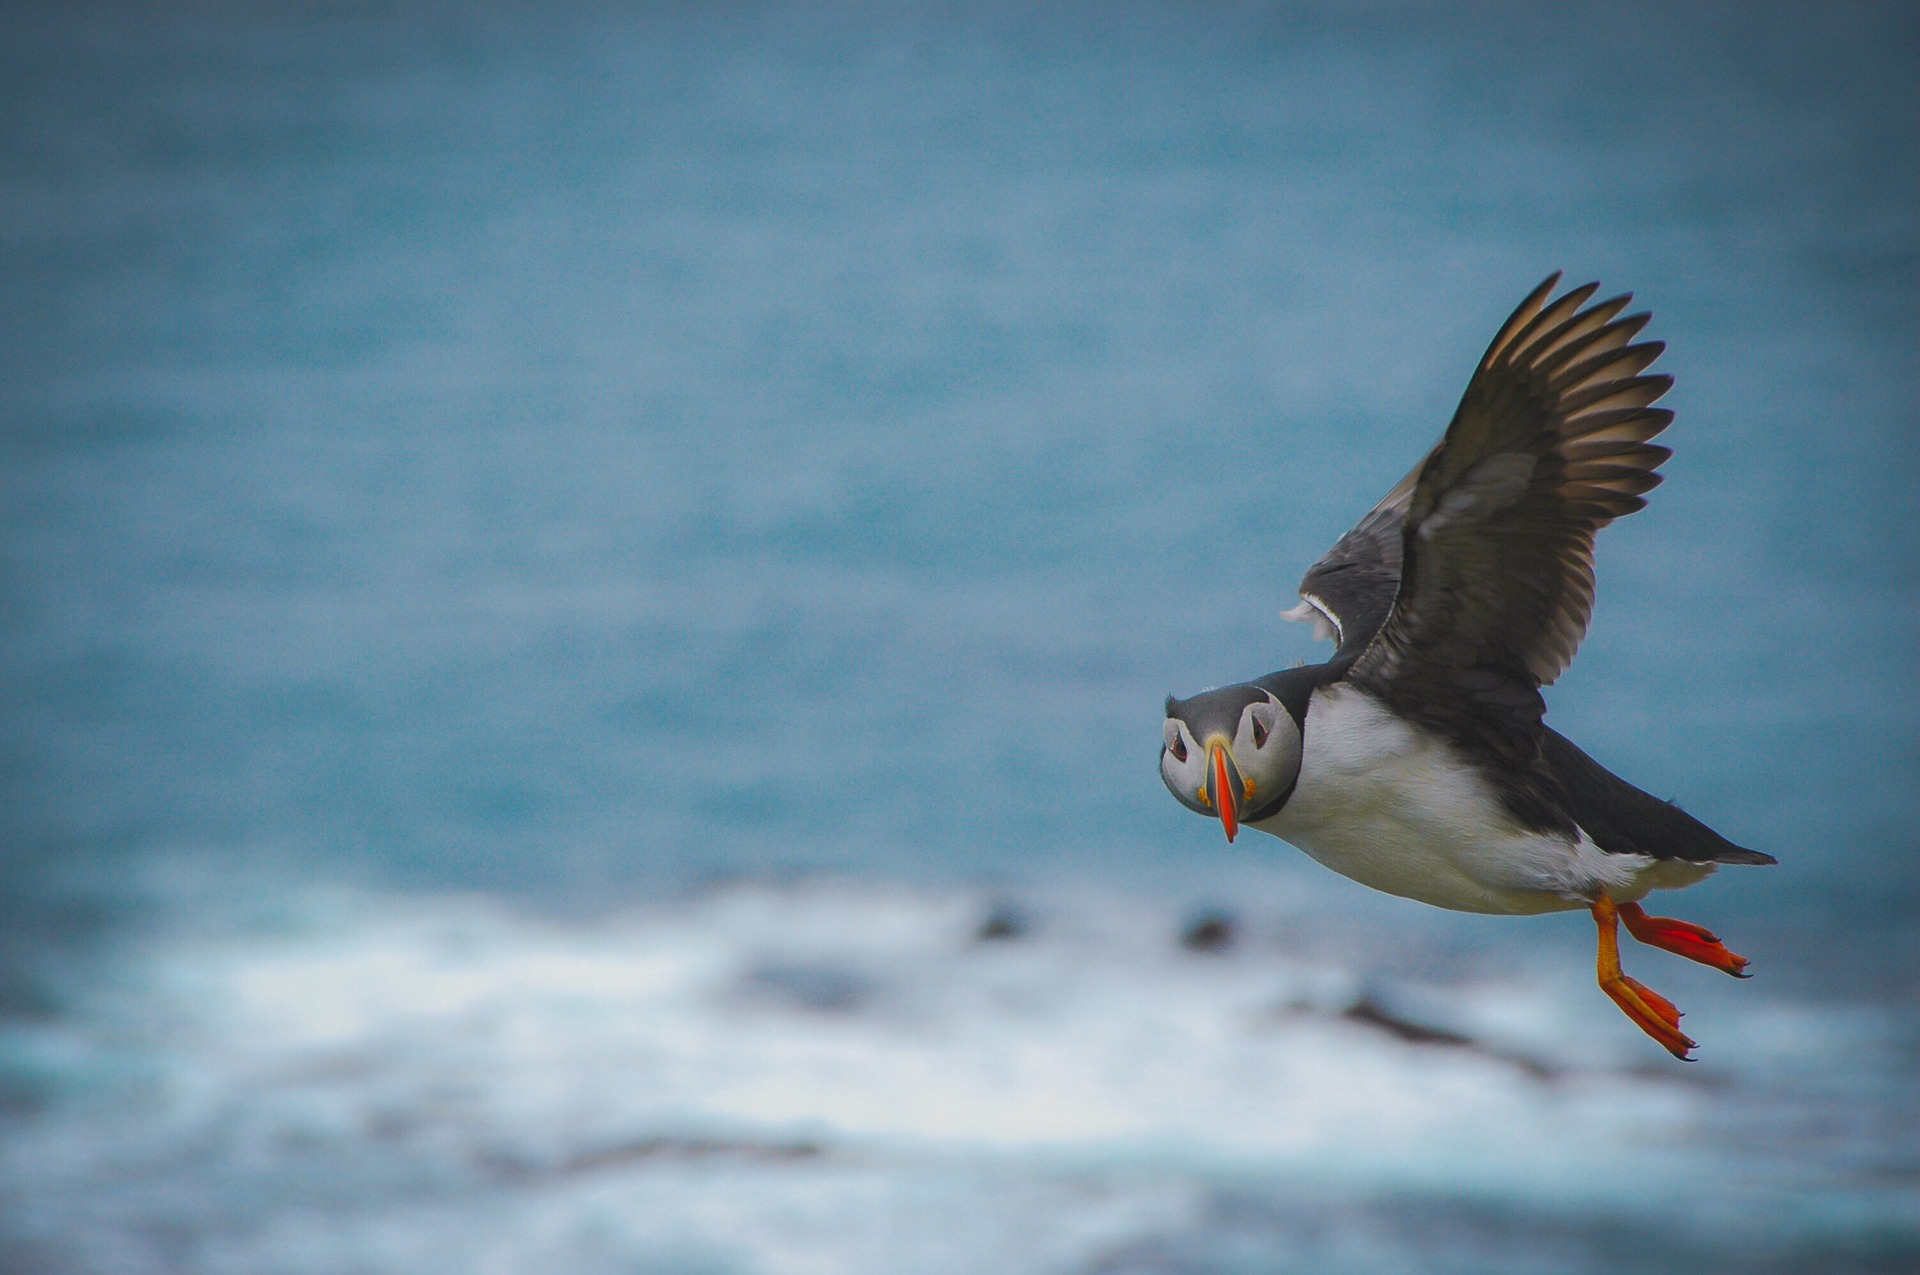 Puffin flying in Iceland, ocean on the background